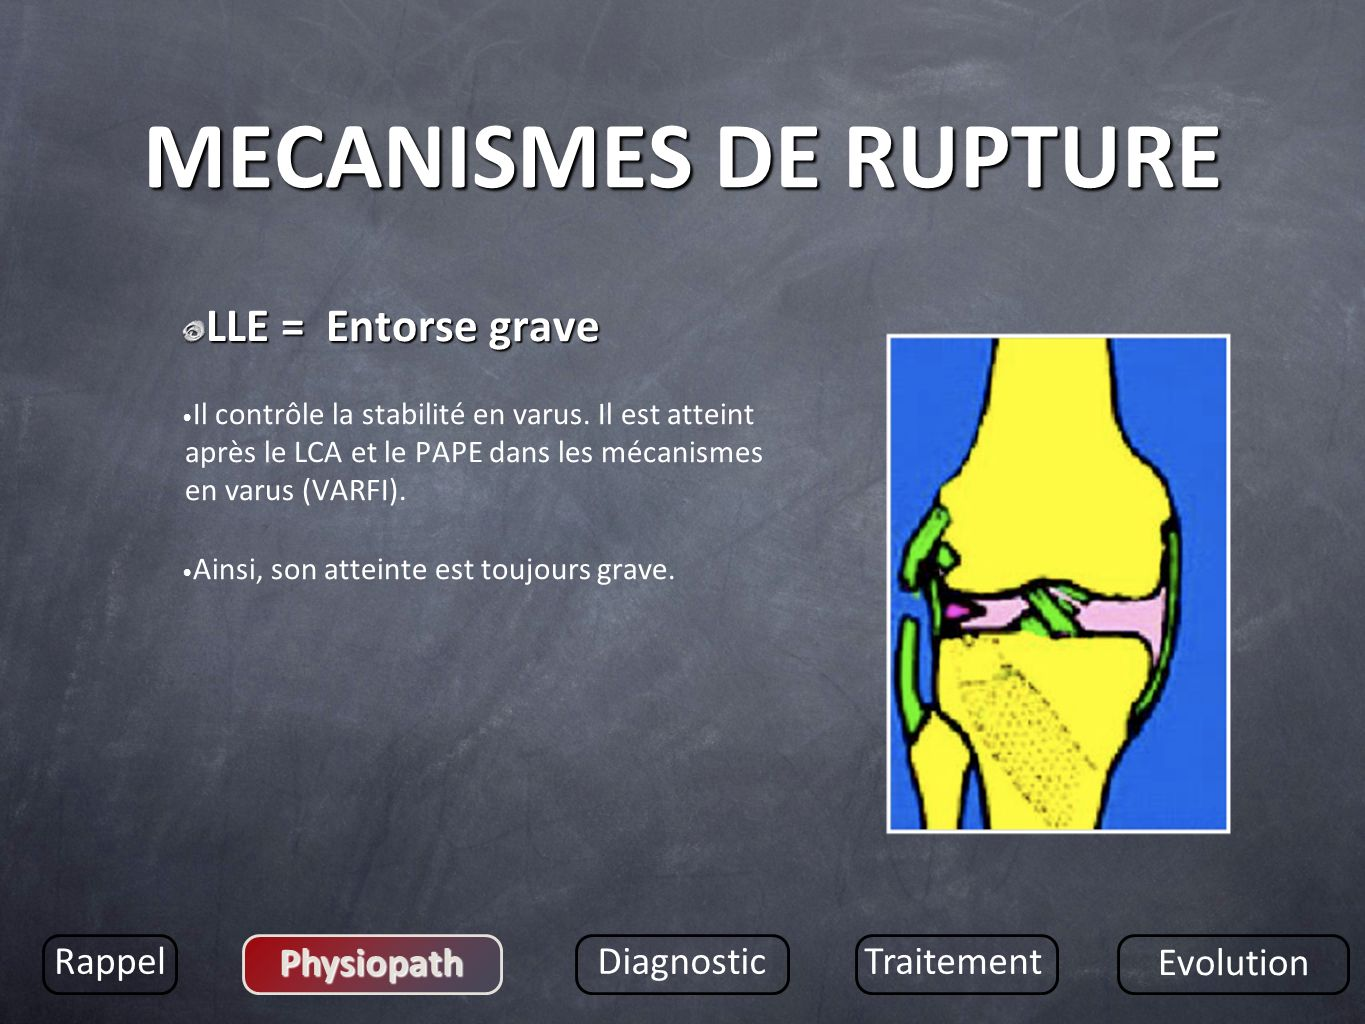 MECANISMES DE RUPTURE LLE = Entorse grave Rappel Physiopath Diagnostic